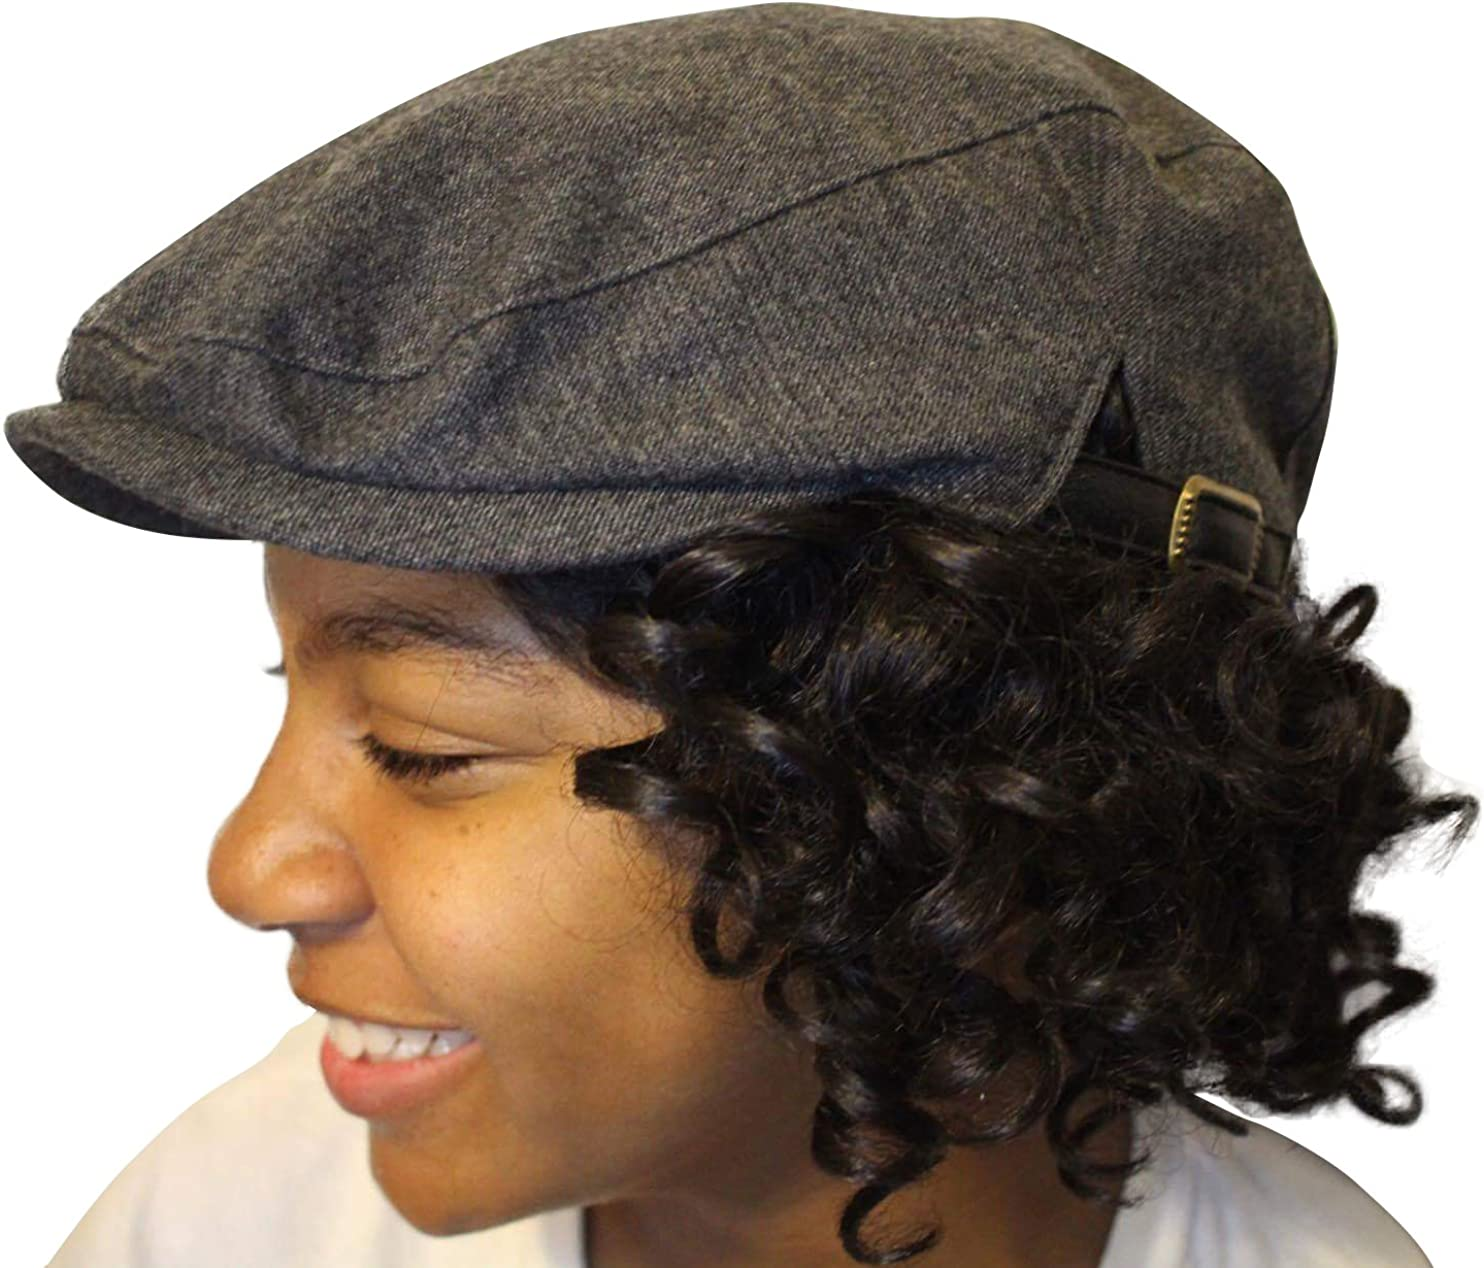 Satin-Lined Newsboy Hat 2021 spring and Large discharge sale summer new with Adjustable Buckles Classic Side Fa